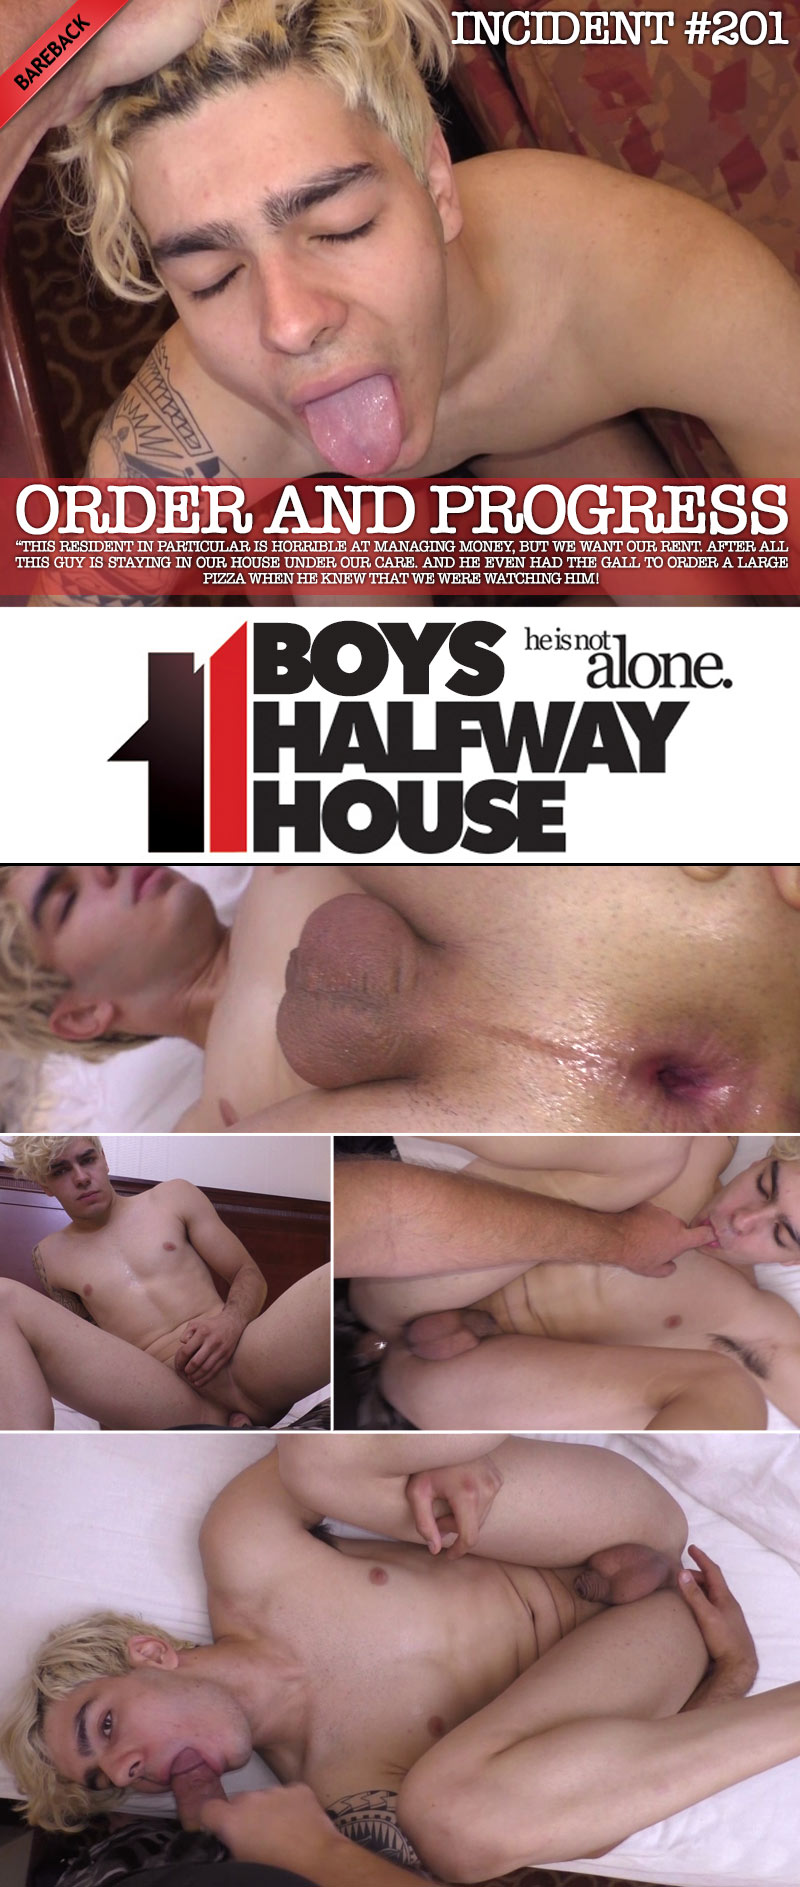 Incident #201: Order and Progress (with Darin Milan) (Bareback) at Boys Halfway House